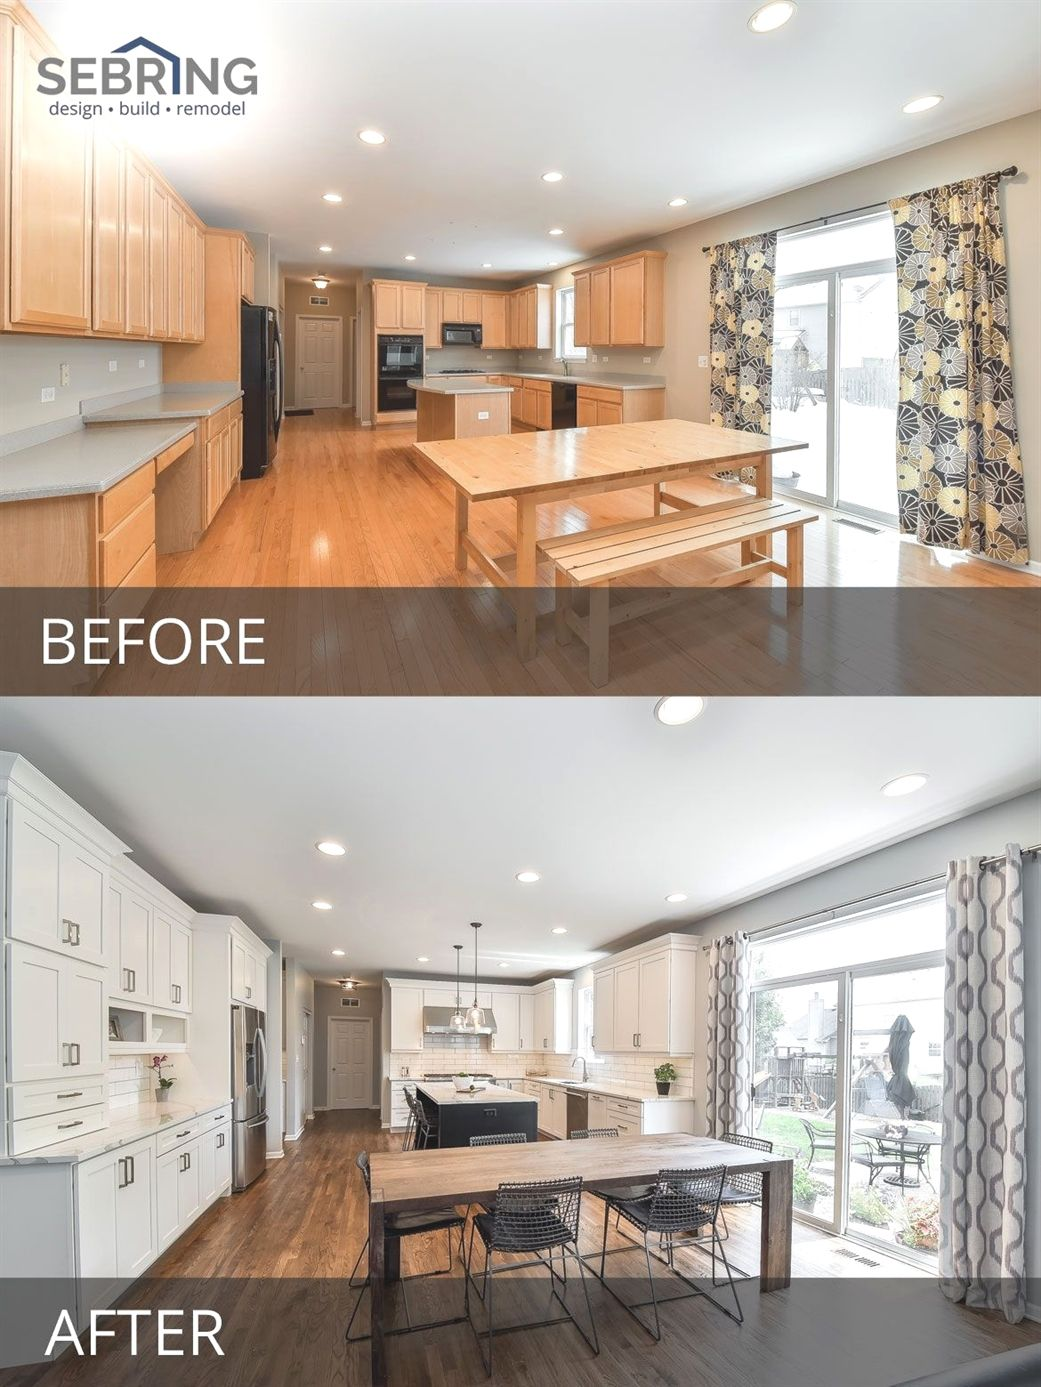 Forclosure Remodel: Kitchen Remodel Countertops